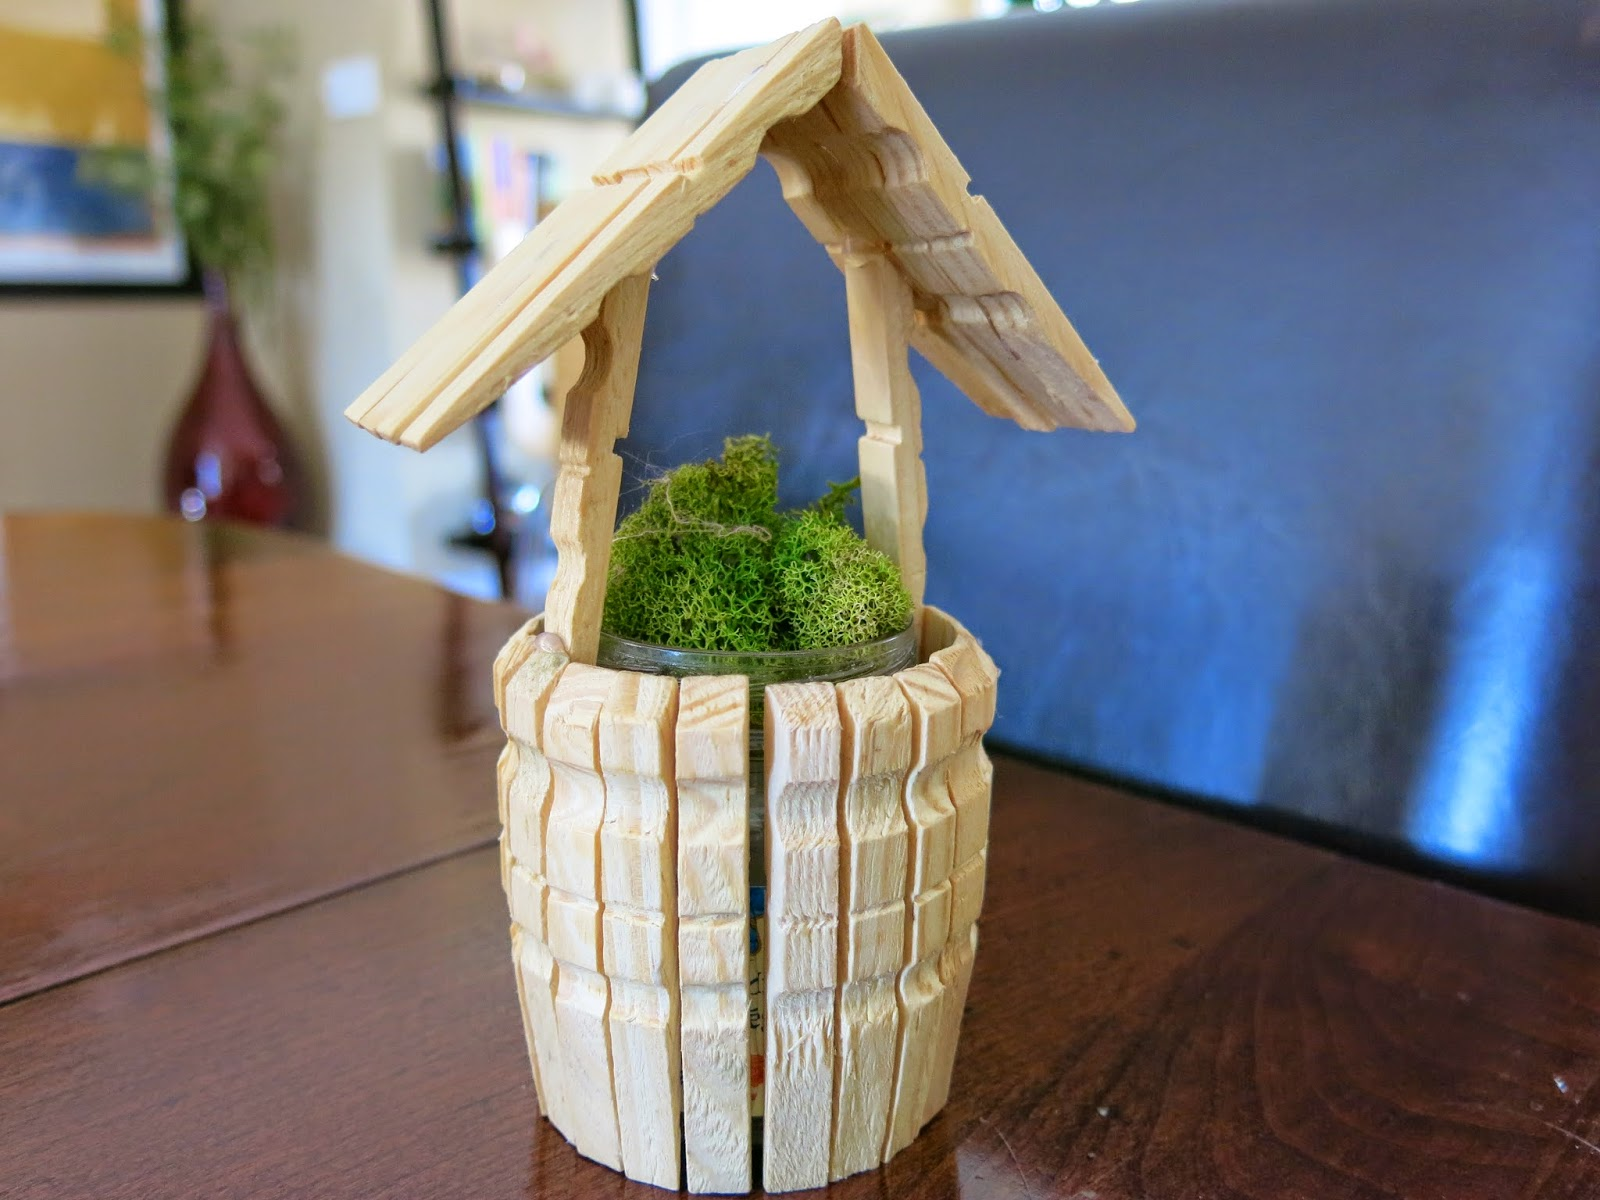 Caker Cooking: Clothespin Wishing Well